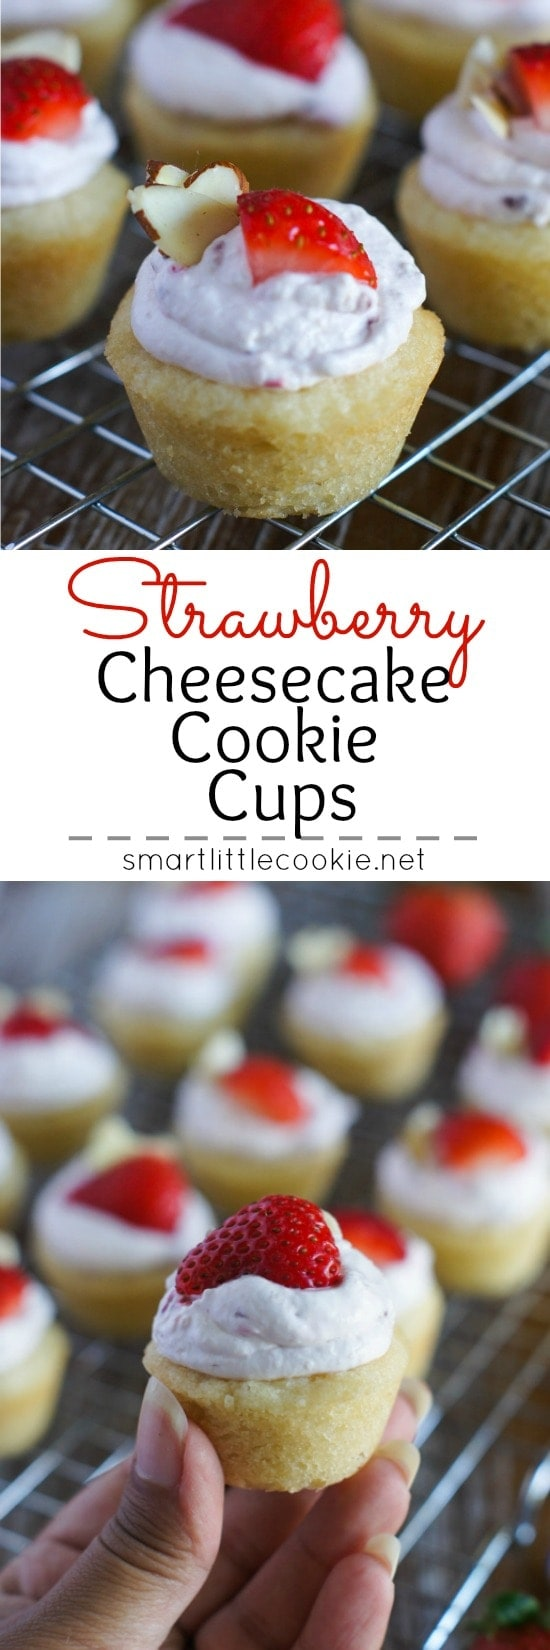 Strawberry Cheesecake Cookie Cups ~ This sweet and easy to make dessert is a great treat for the entire family and includes a surprising ingredient that will give you a boost of vitamin C. #ad #Healthy4School